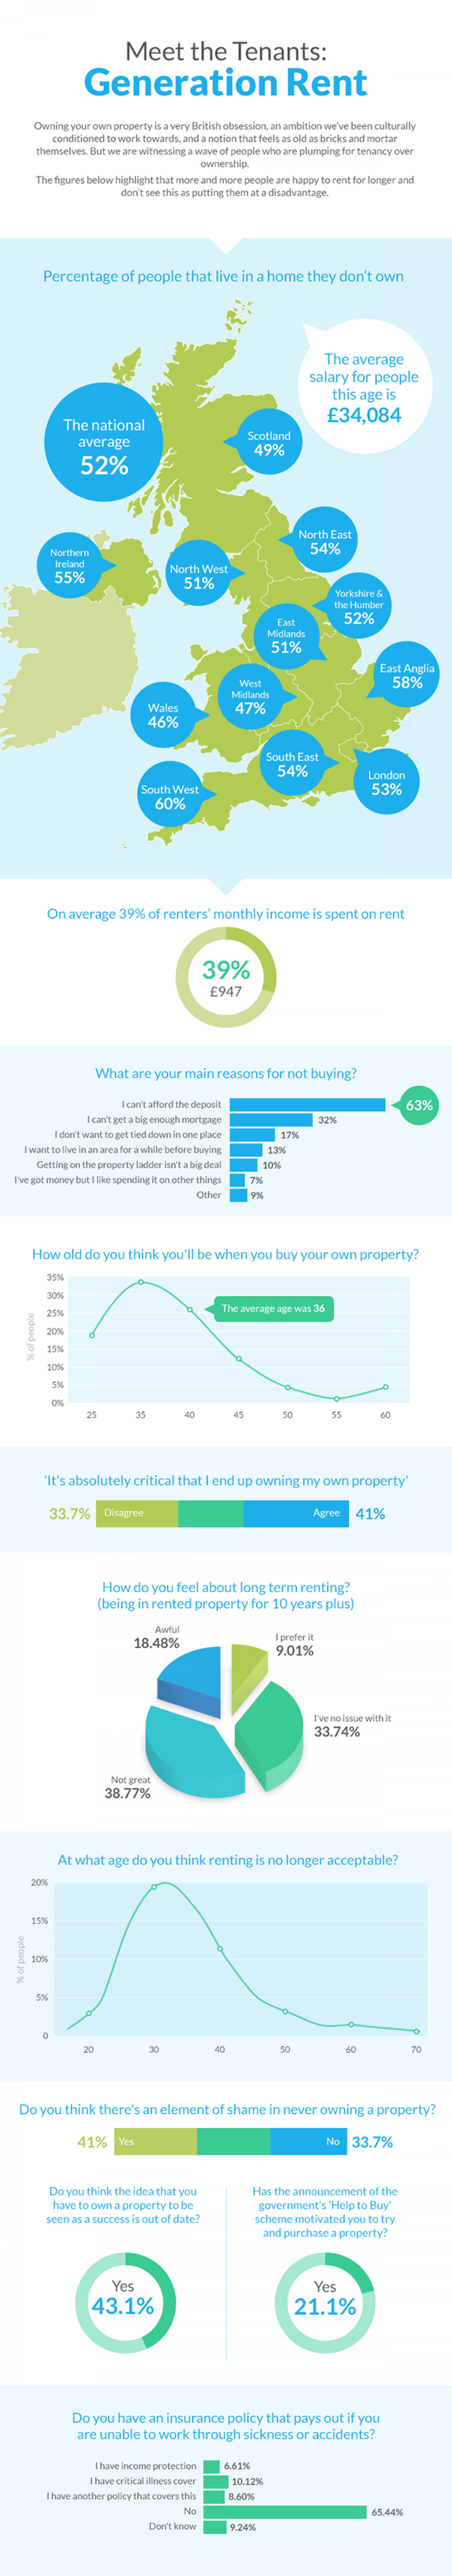 Meet the tenants: Generation Rent Infographic